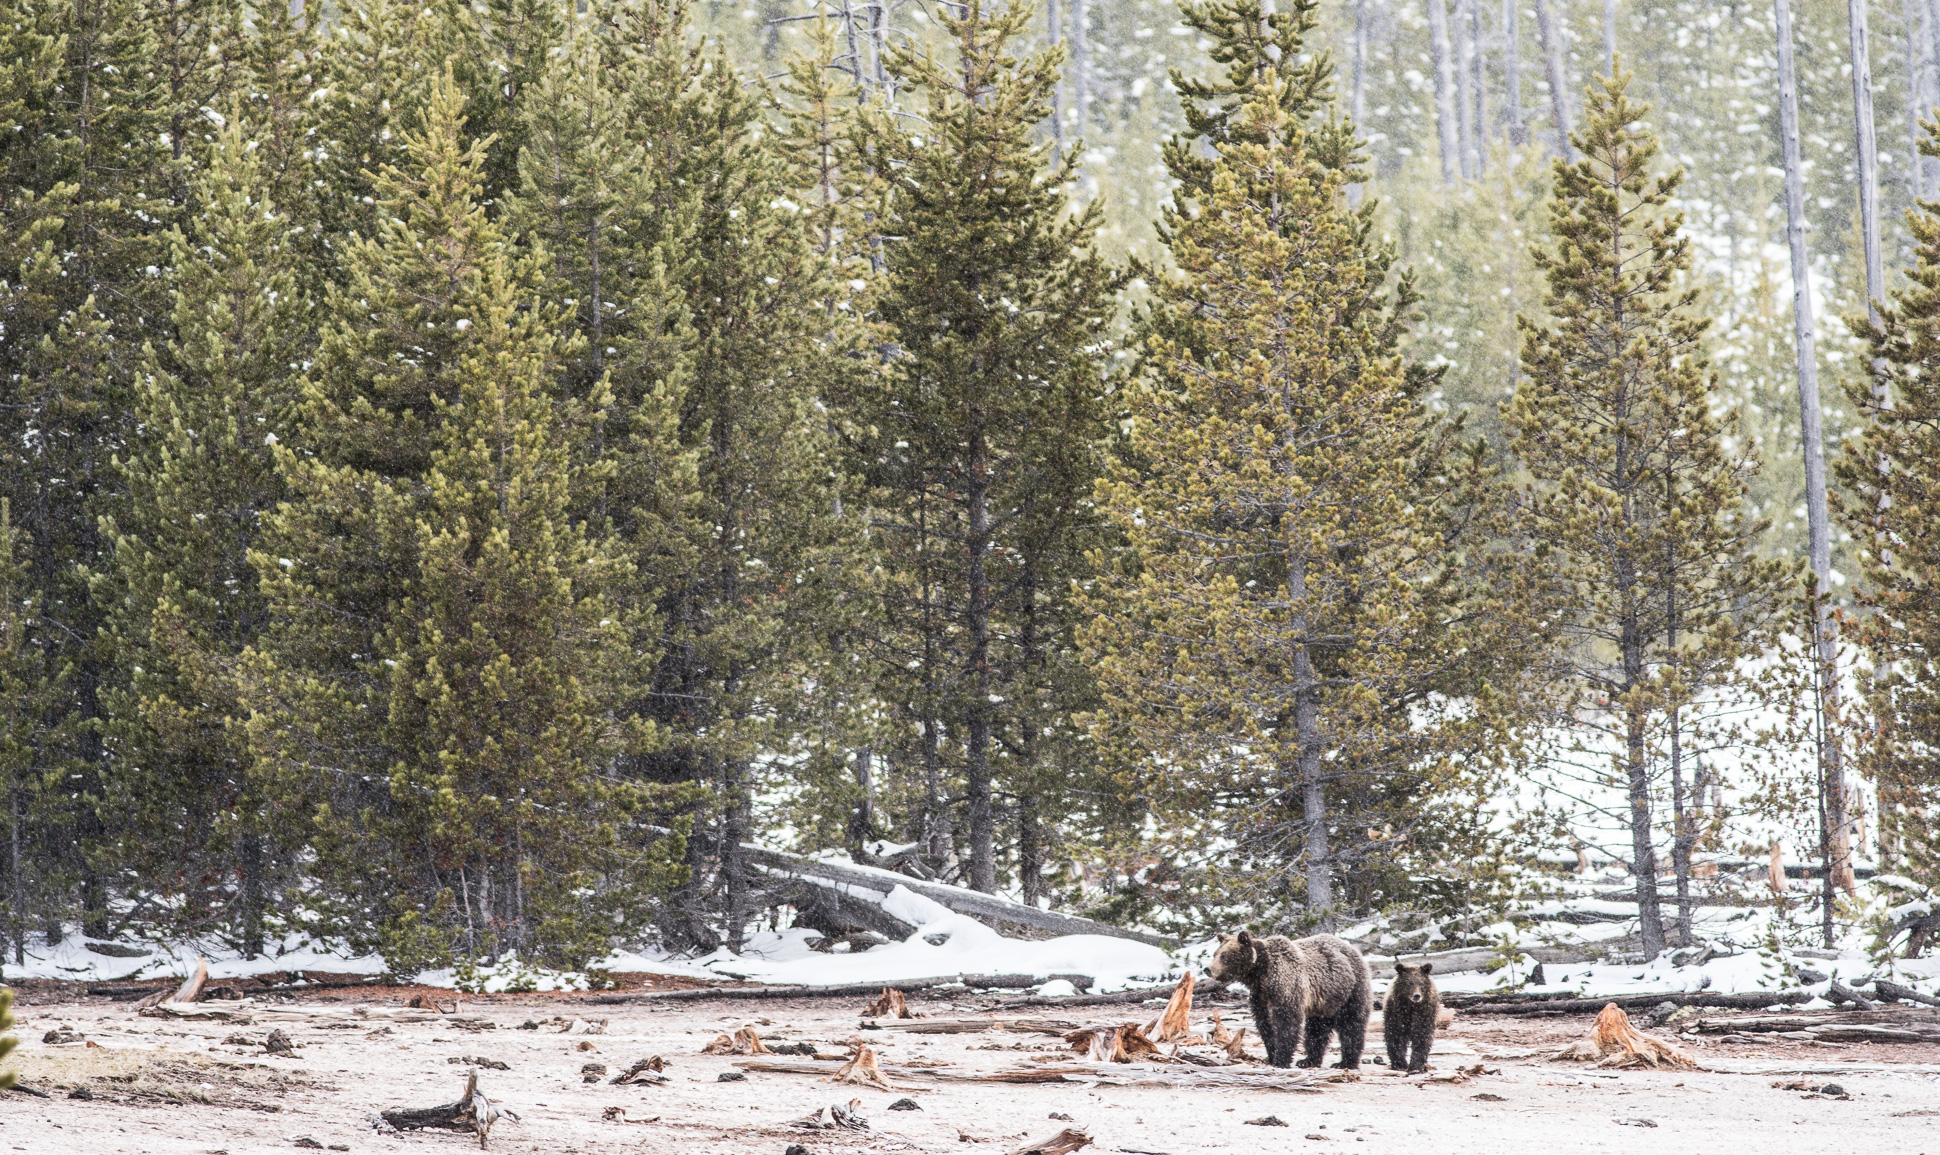 Grizzly Bear and cub Valley Girl near Roaring Mountain Yellowstone National Park WY-05965